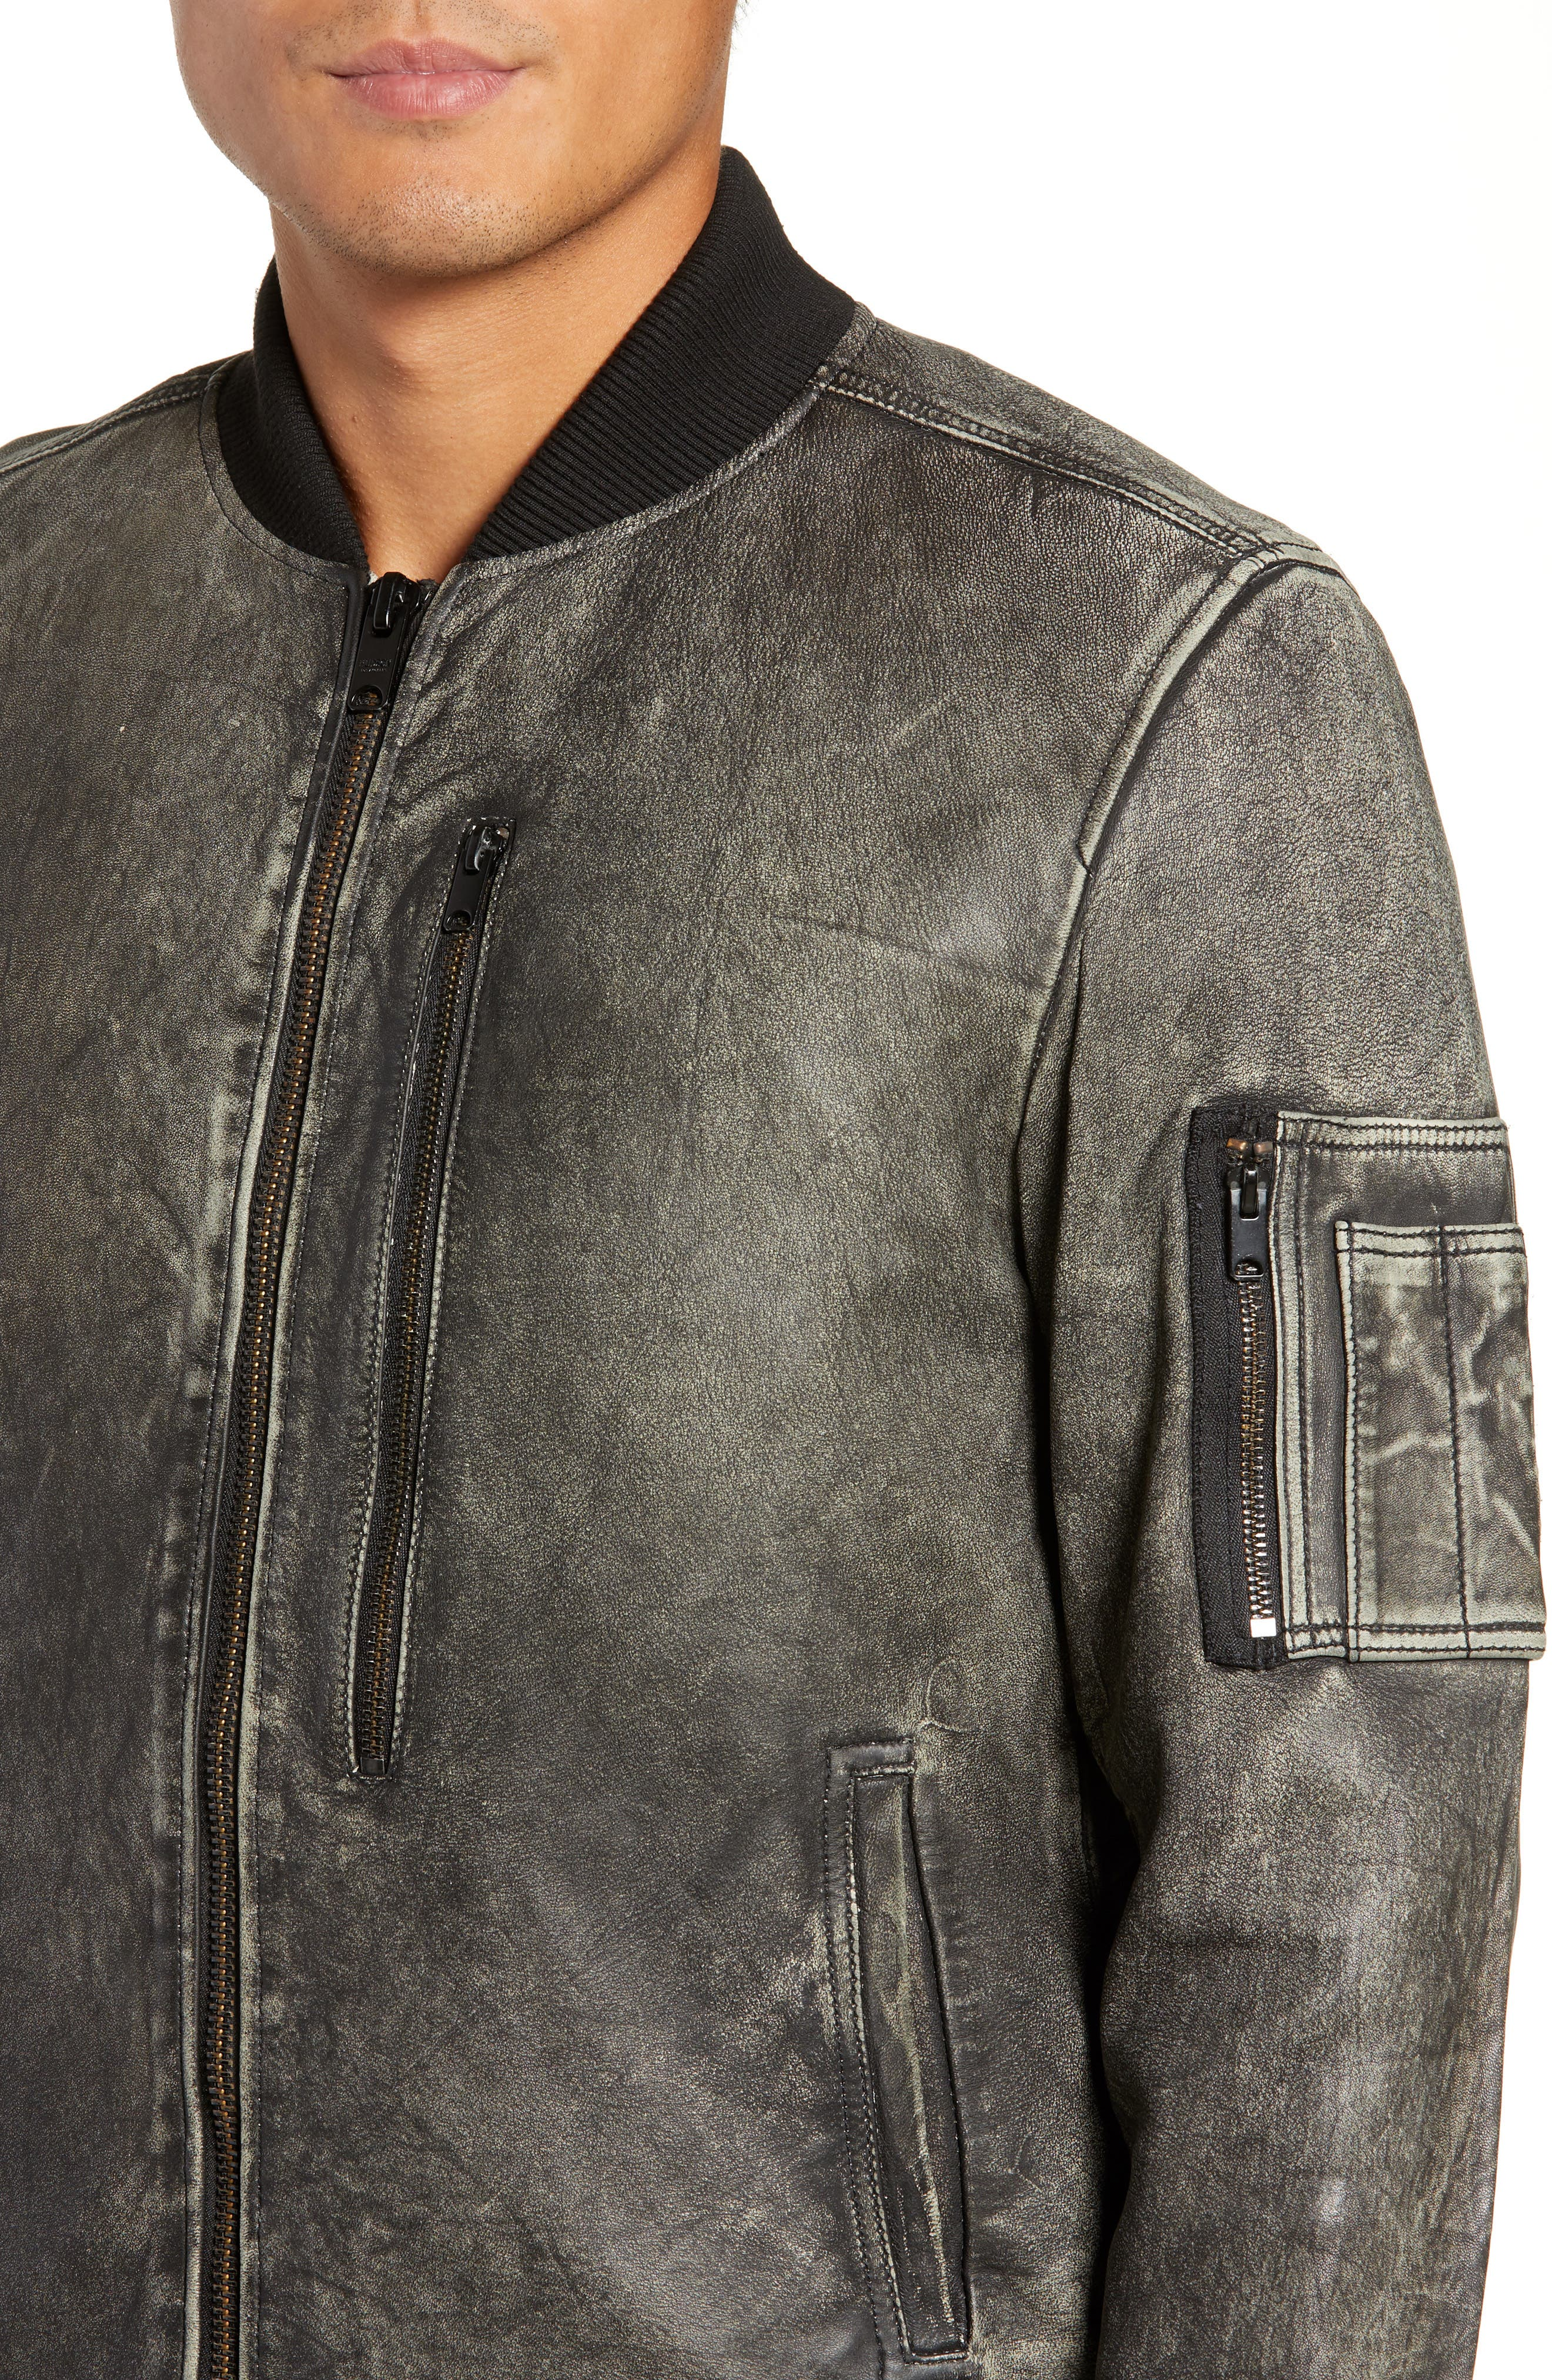 Hudson Leather Bomber Jacket,                             Alternate thumbnail 4, color,                             063